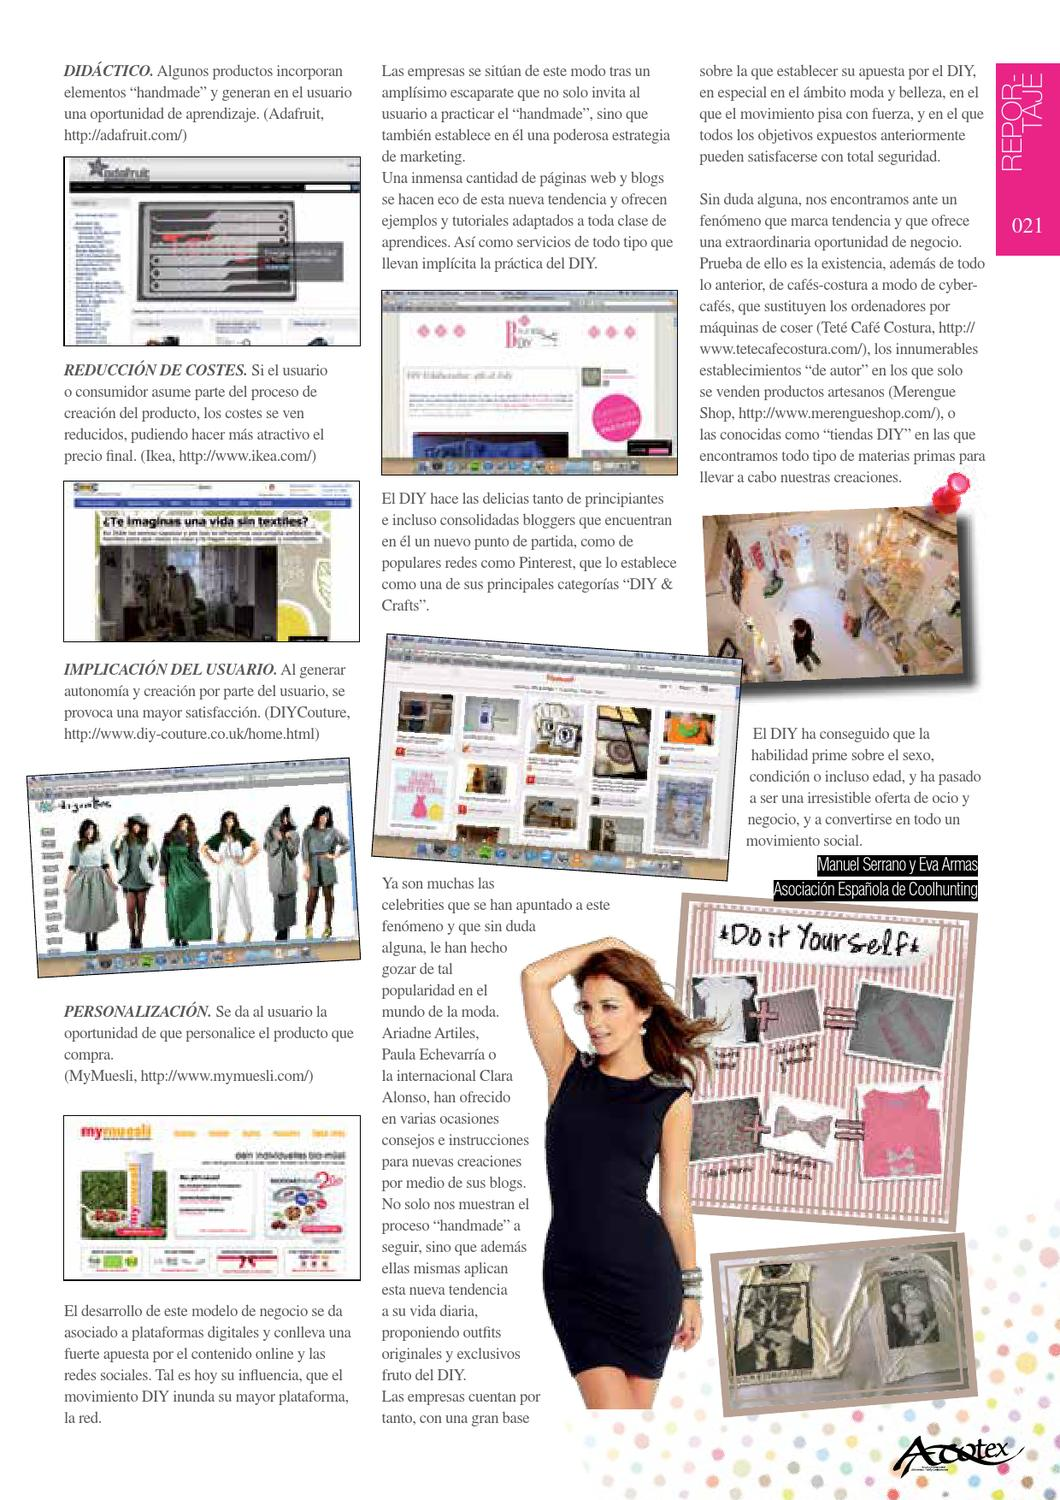 Revista Acotex by Degree in Fashion Communications and Management ...